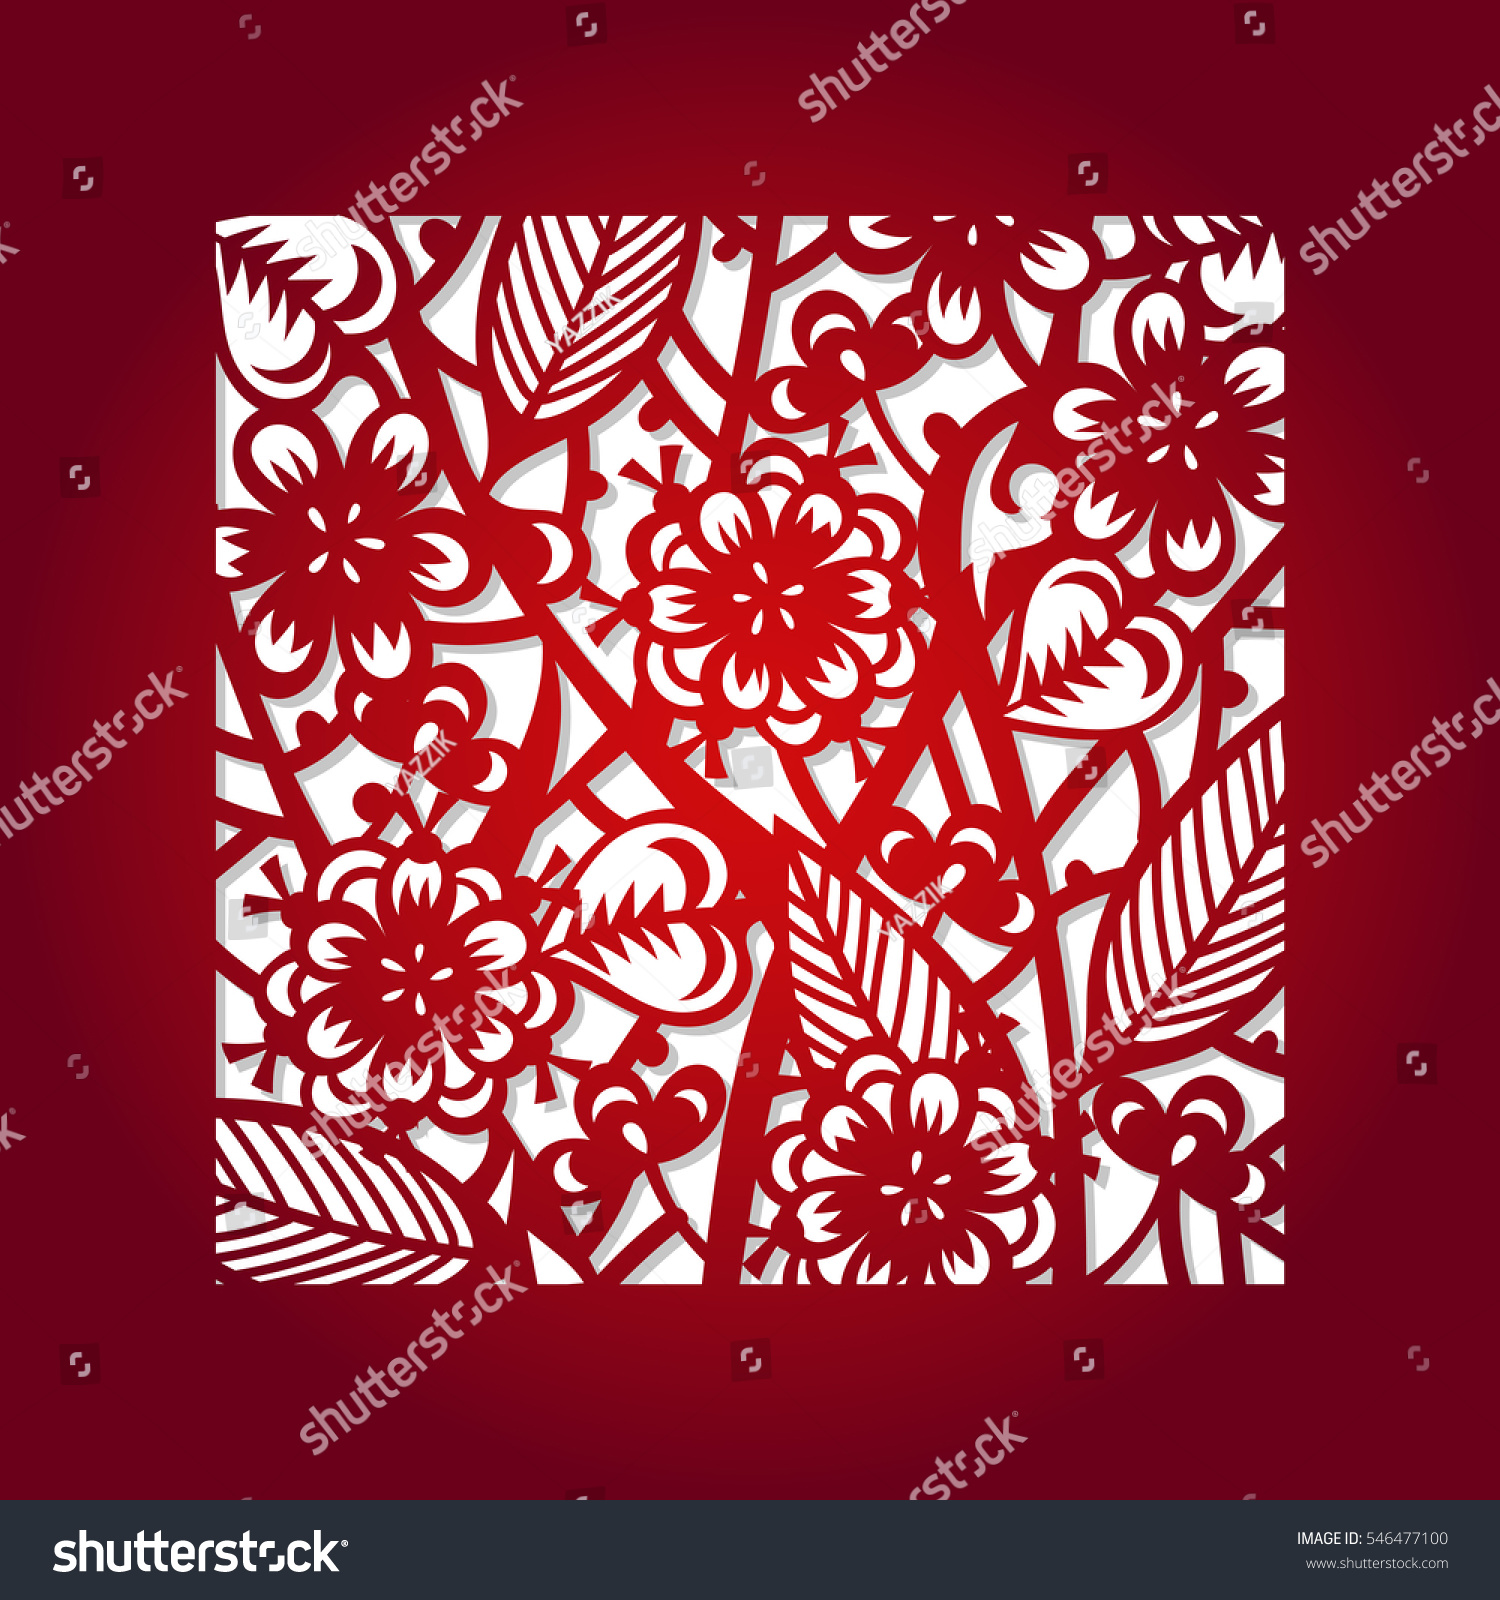 Laser Cut Flower Square Pattern Decorative Stock Vector (Royalty ...